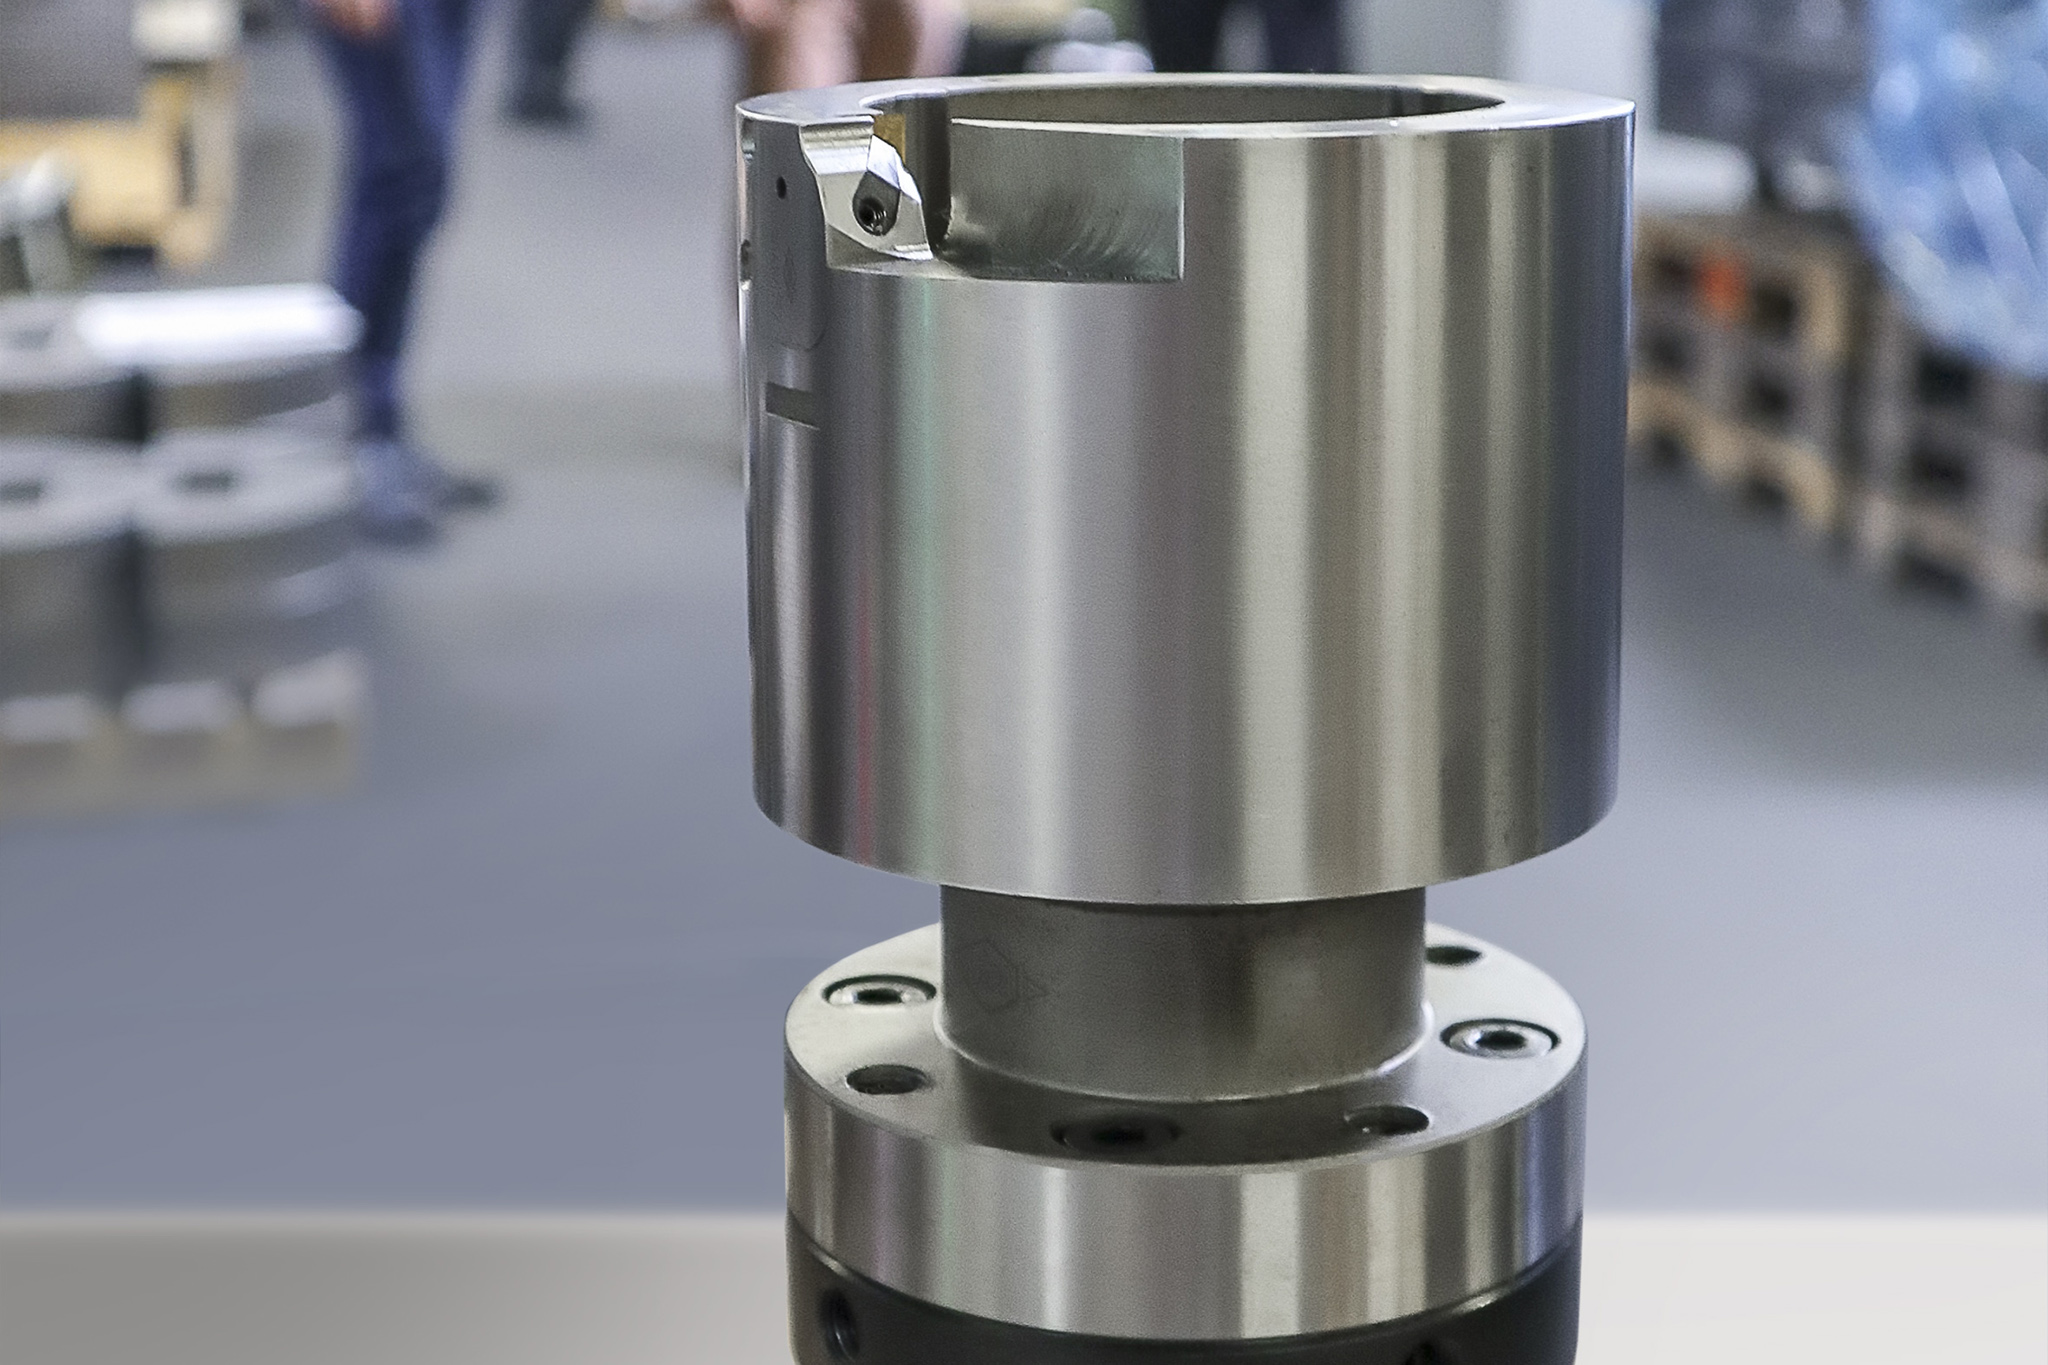 An external reamer with module and hollow shank taper connection is shown in the foreground. Manufacturing at Völlm is shown in the background.